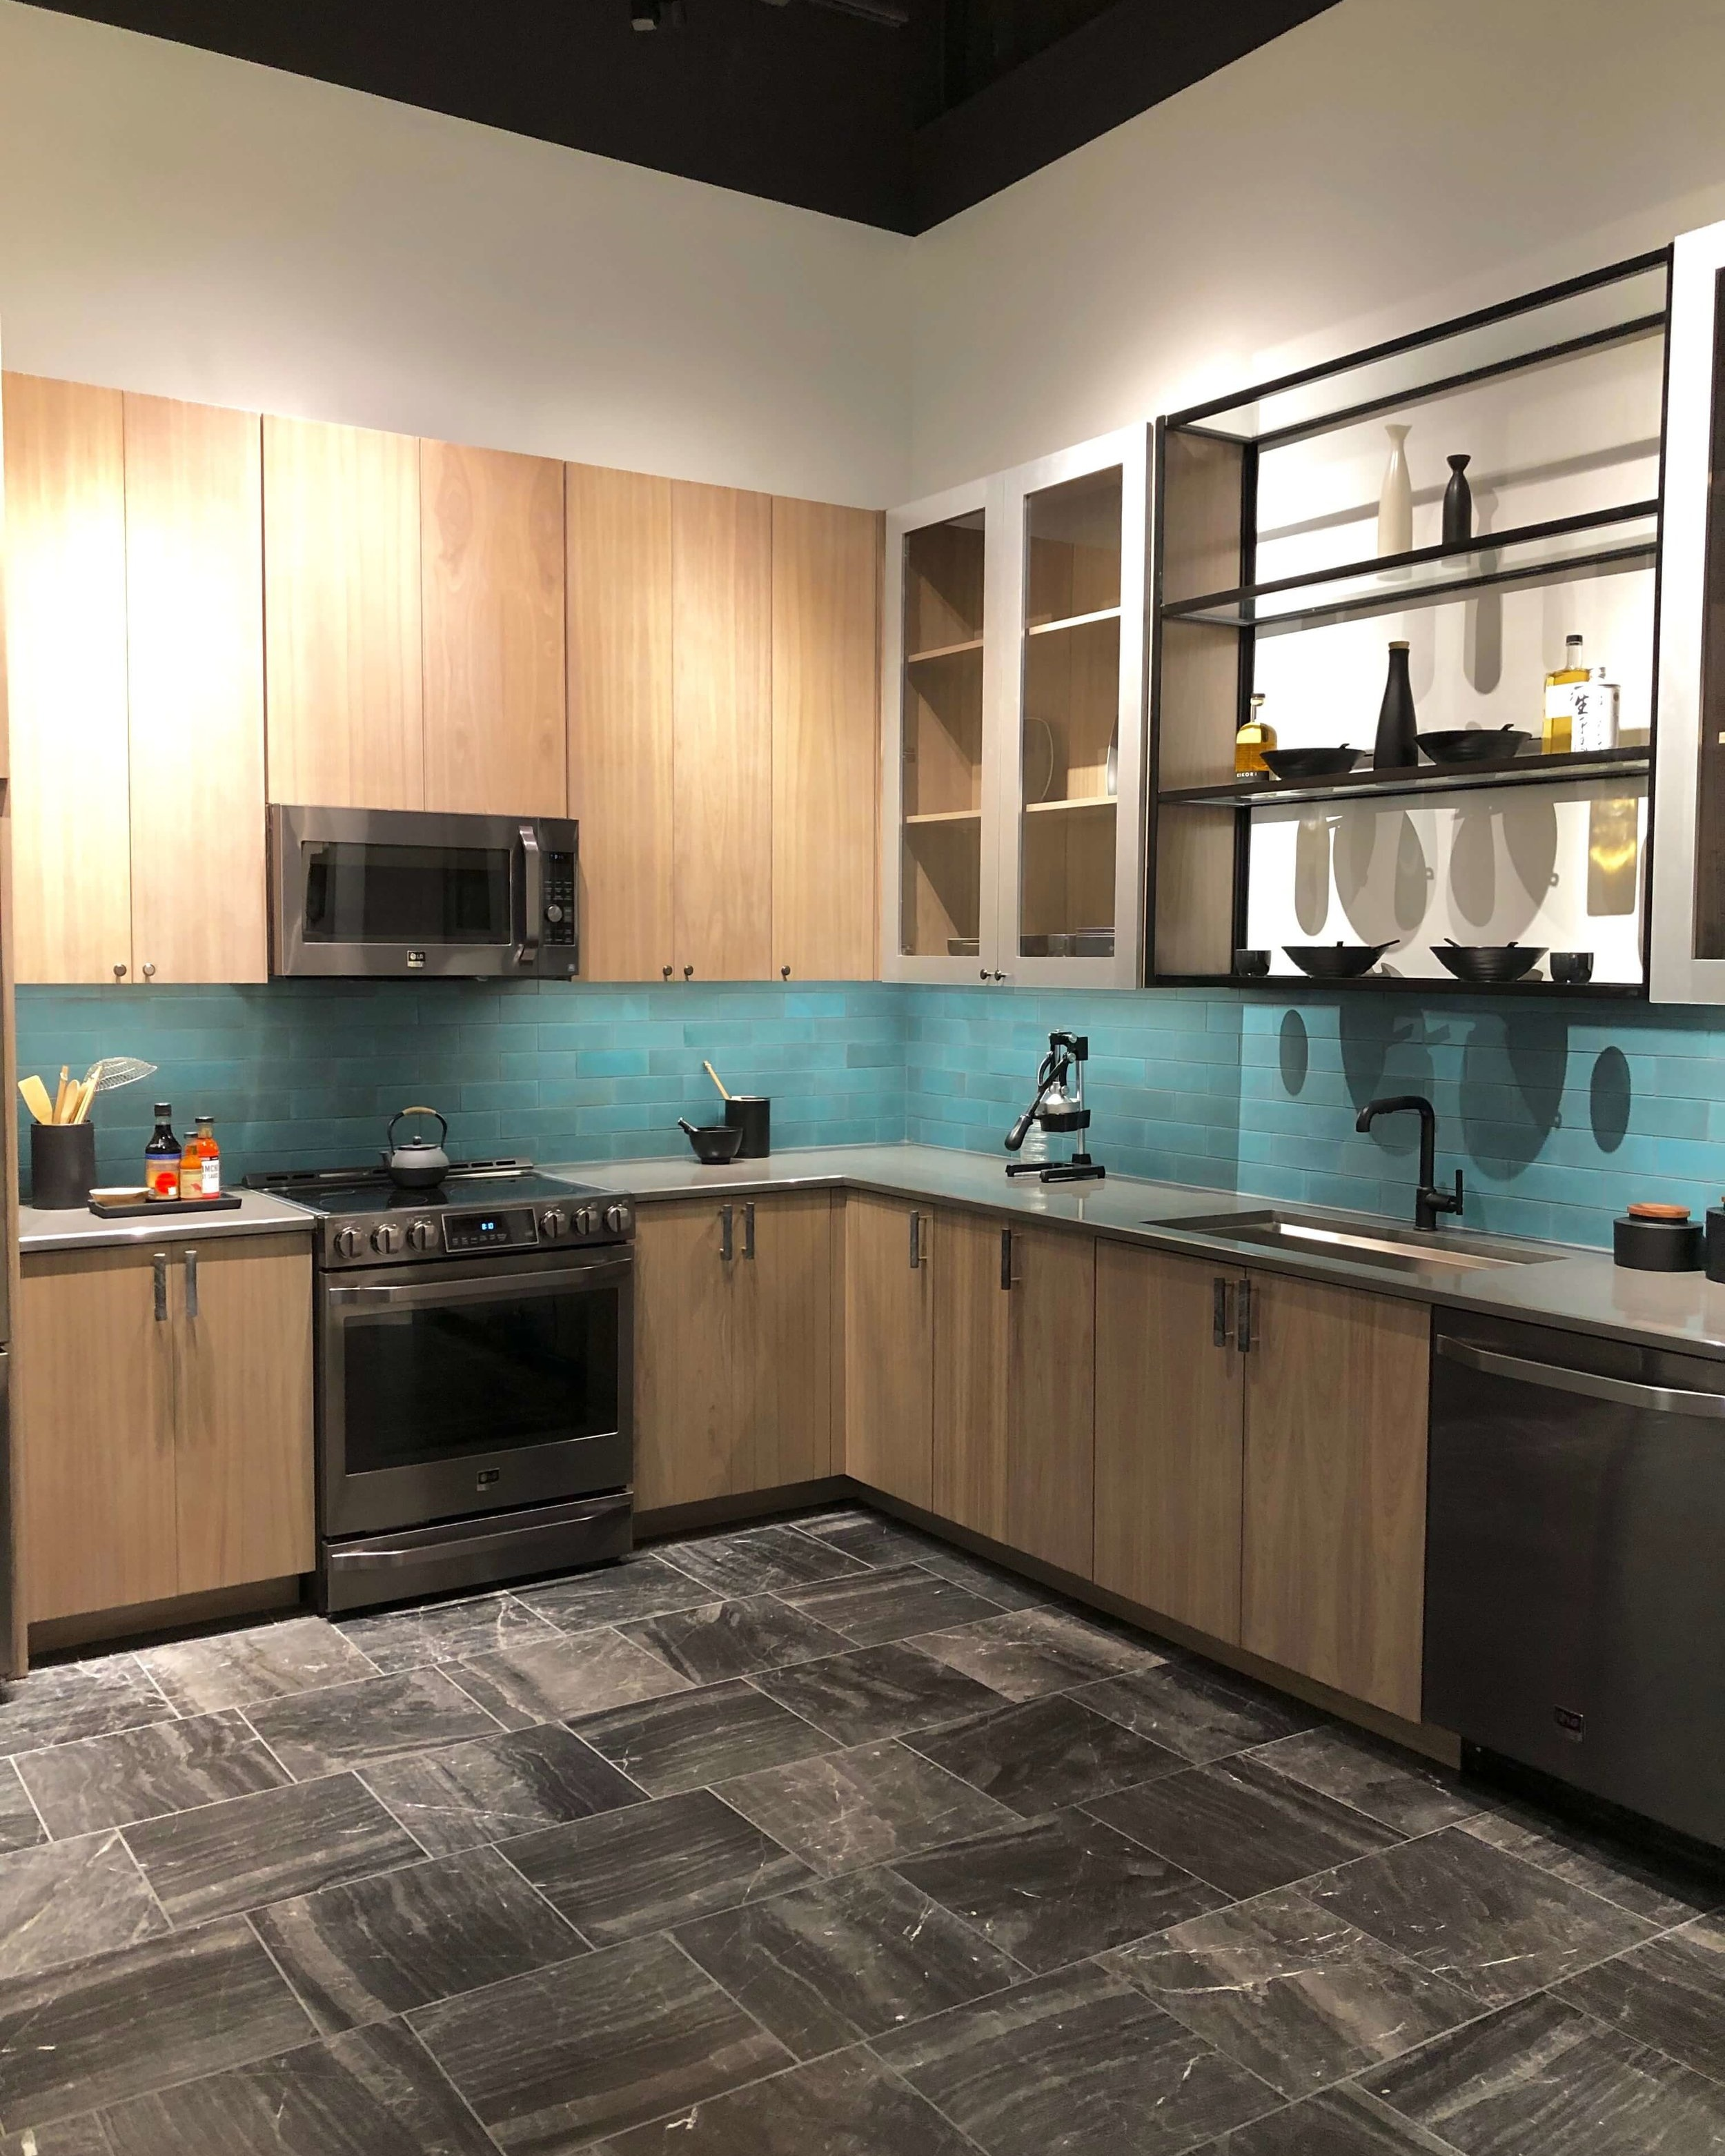 Natural wood cabinetry with black hardware details and turquoise tile backsplash in kitchen with LG Appliances | SKS Appliances Experience and Design Center, Napa